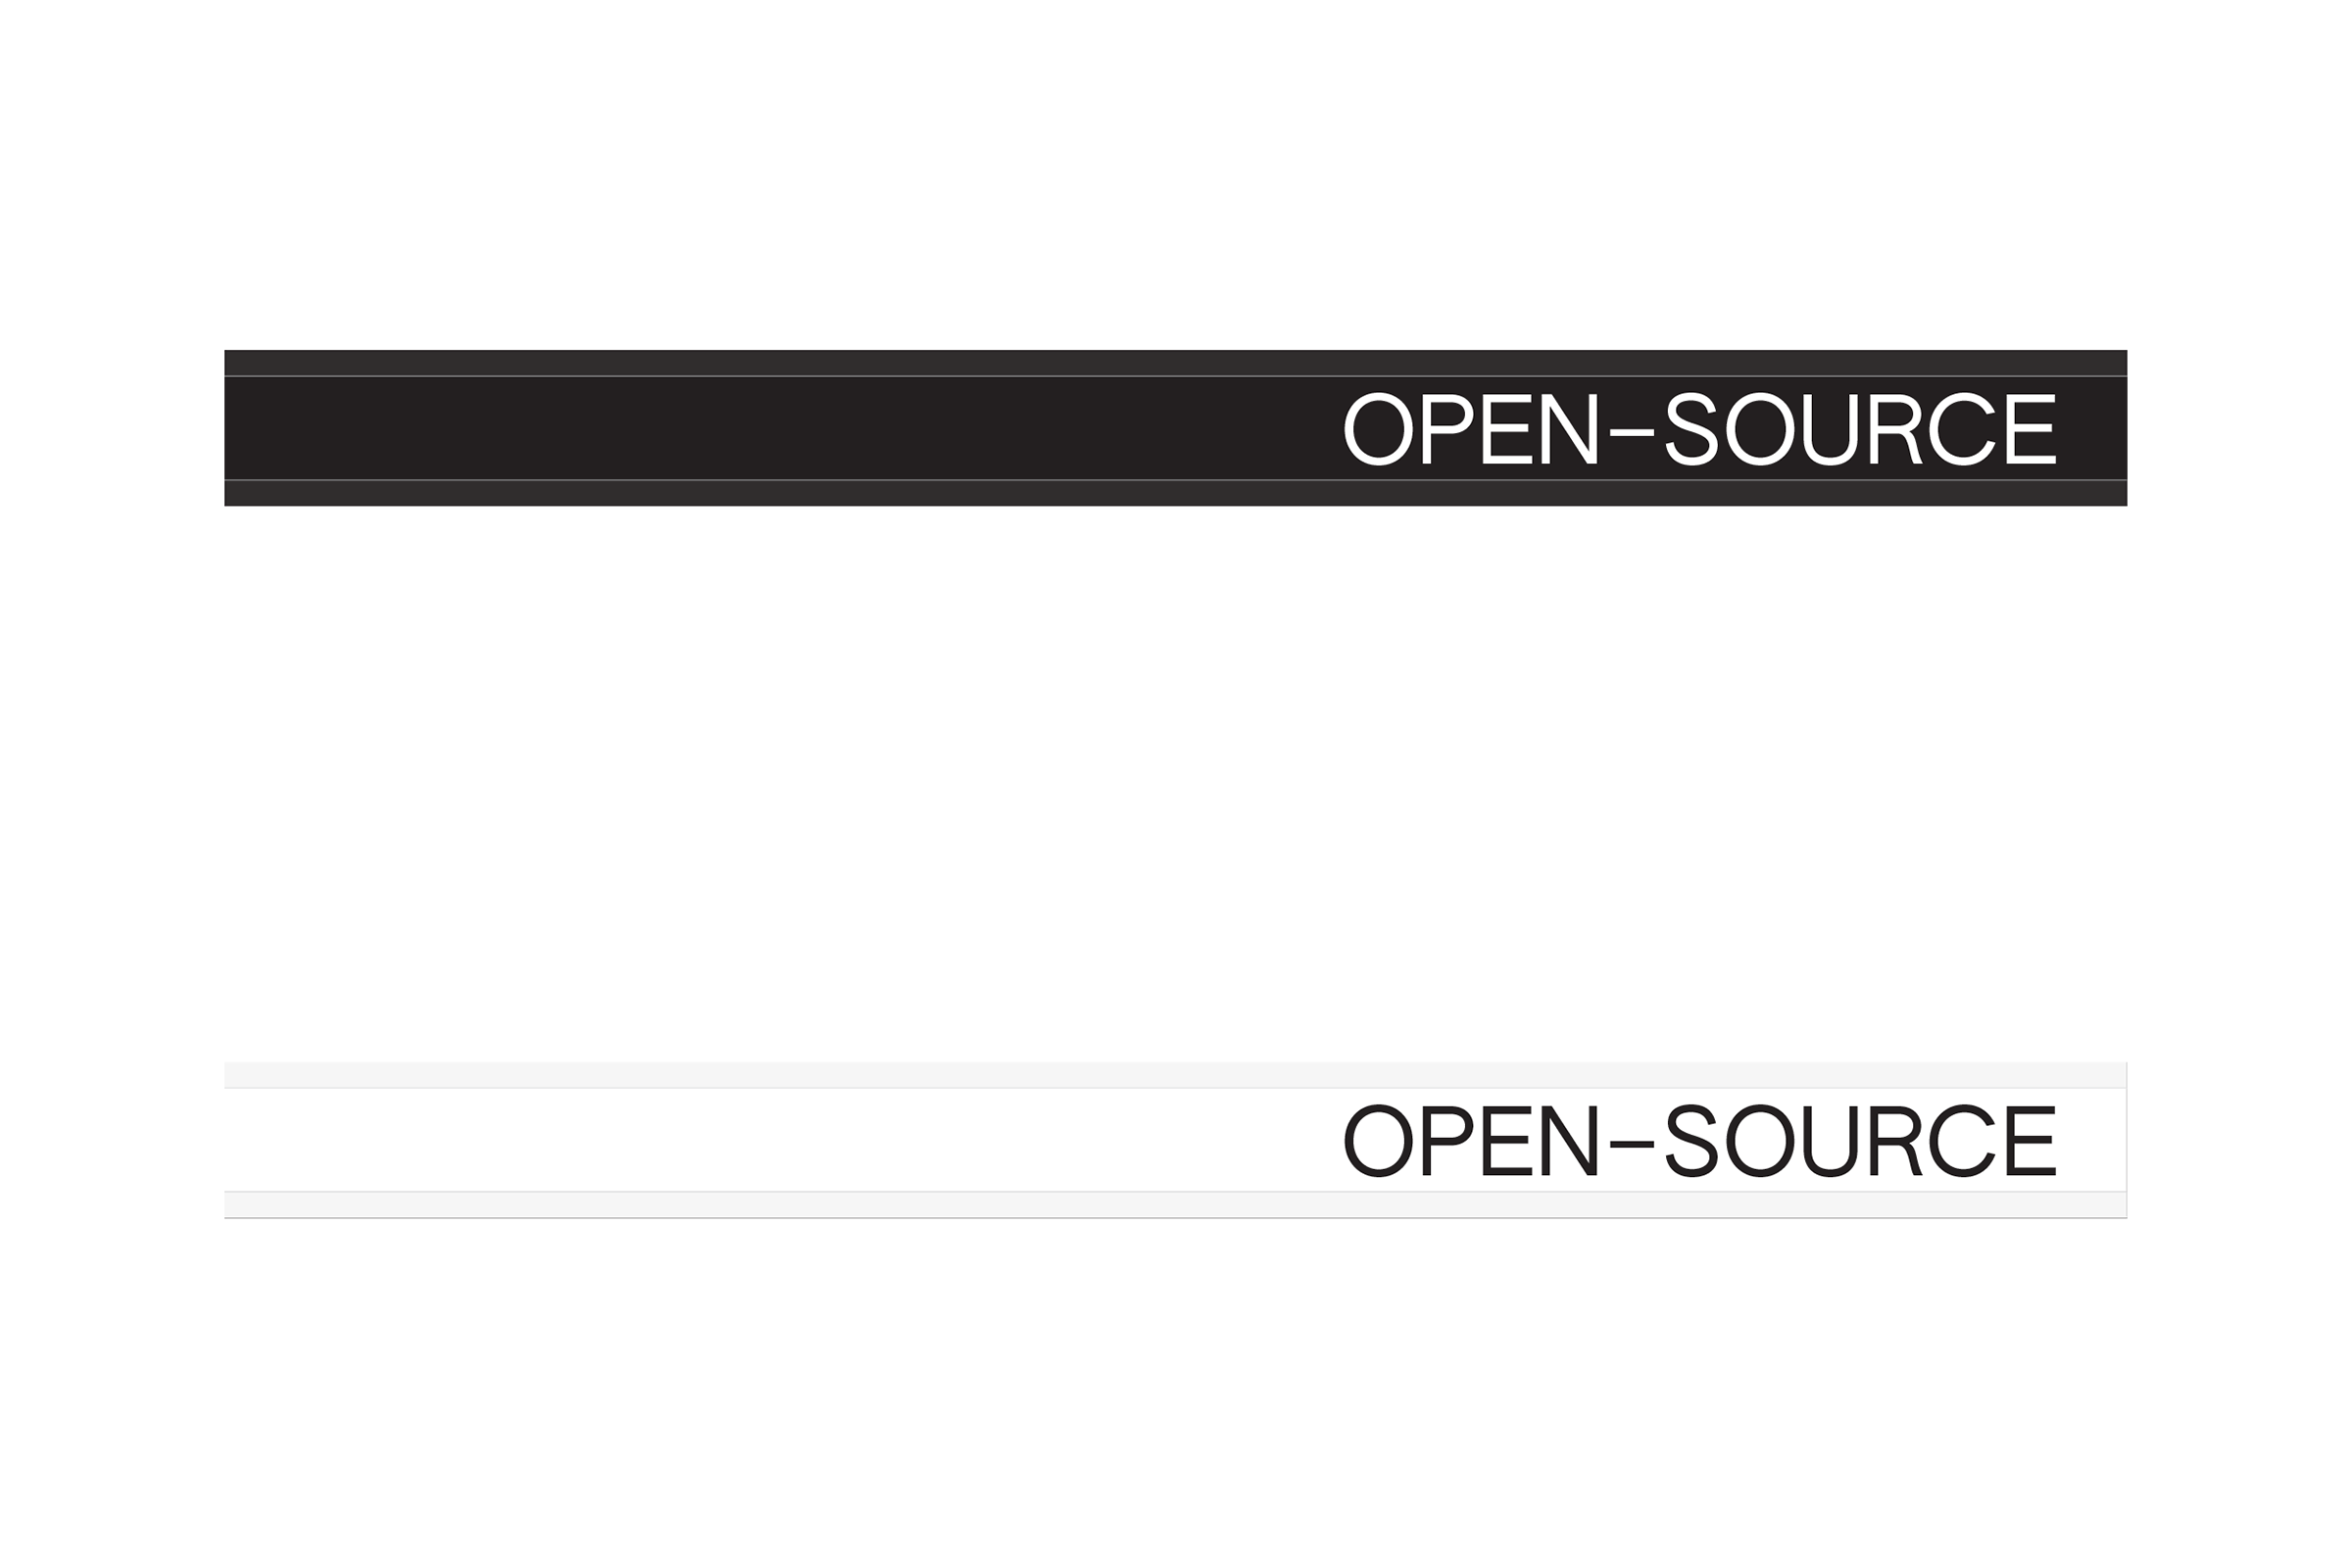 OPEN–SOURCE